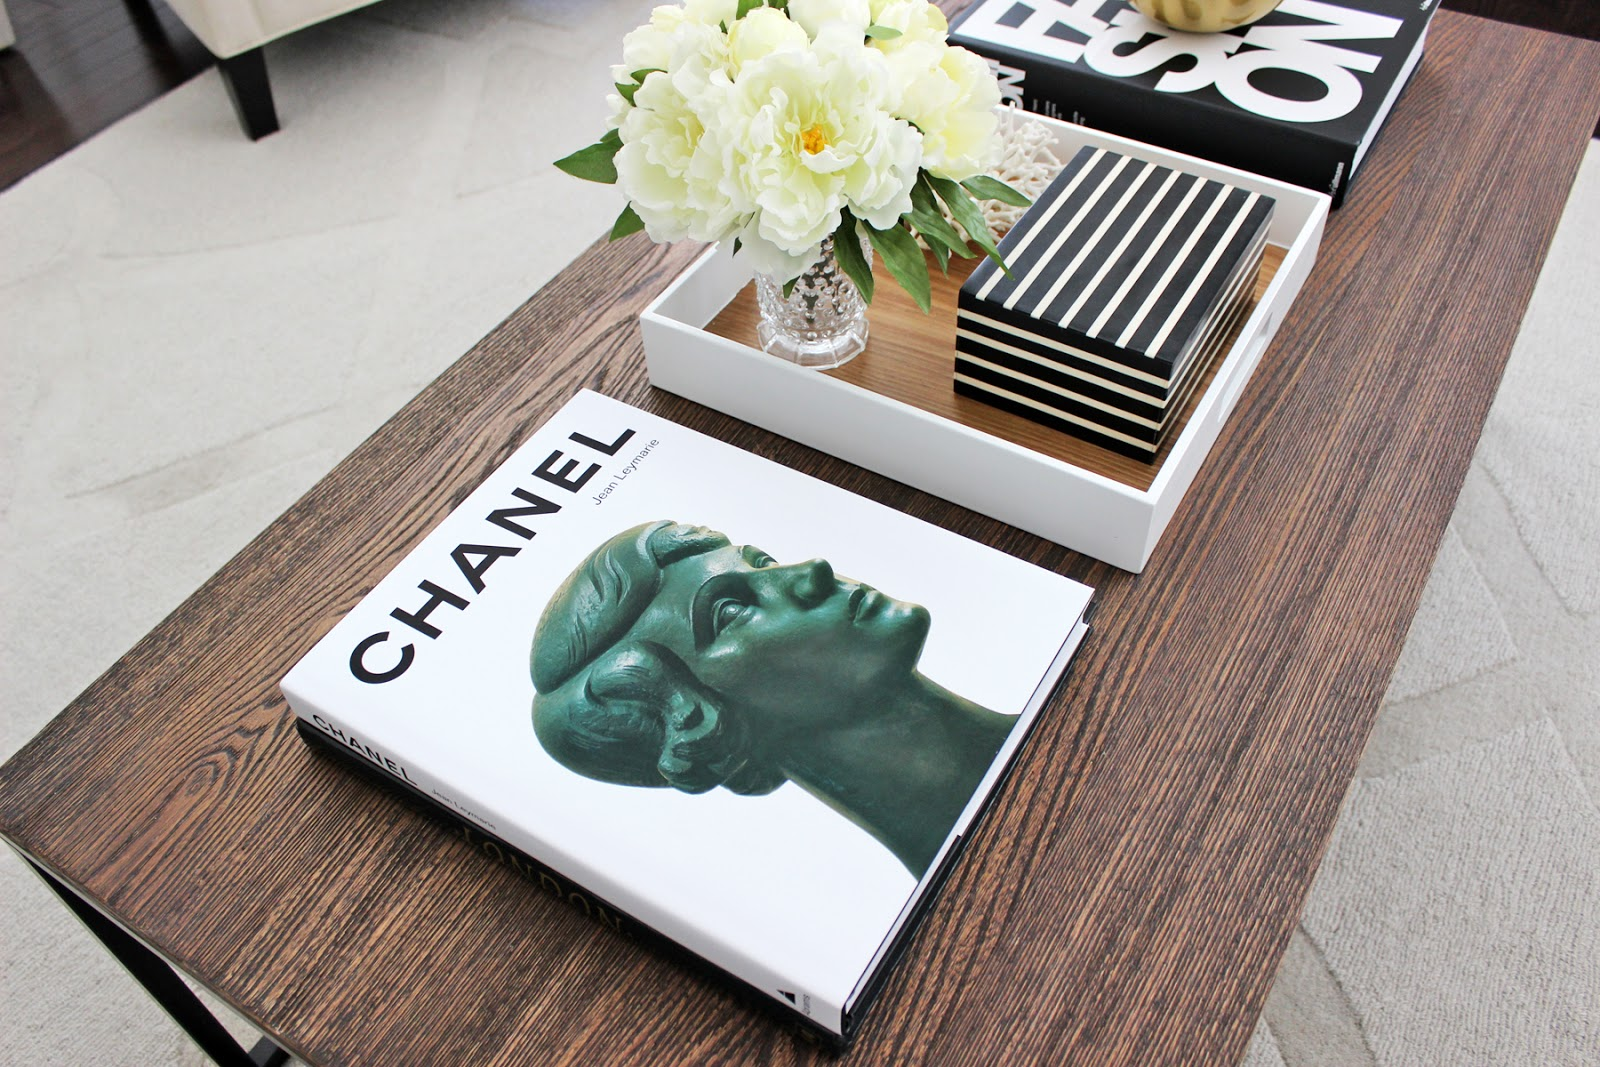 Wonderful Chanel As Coffee Table Book Image And Description